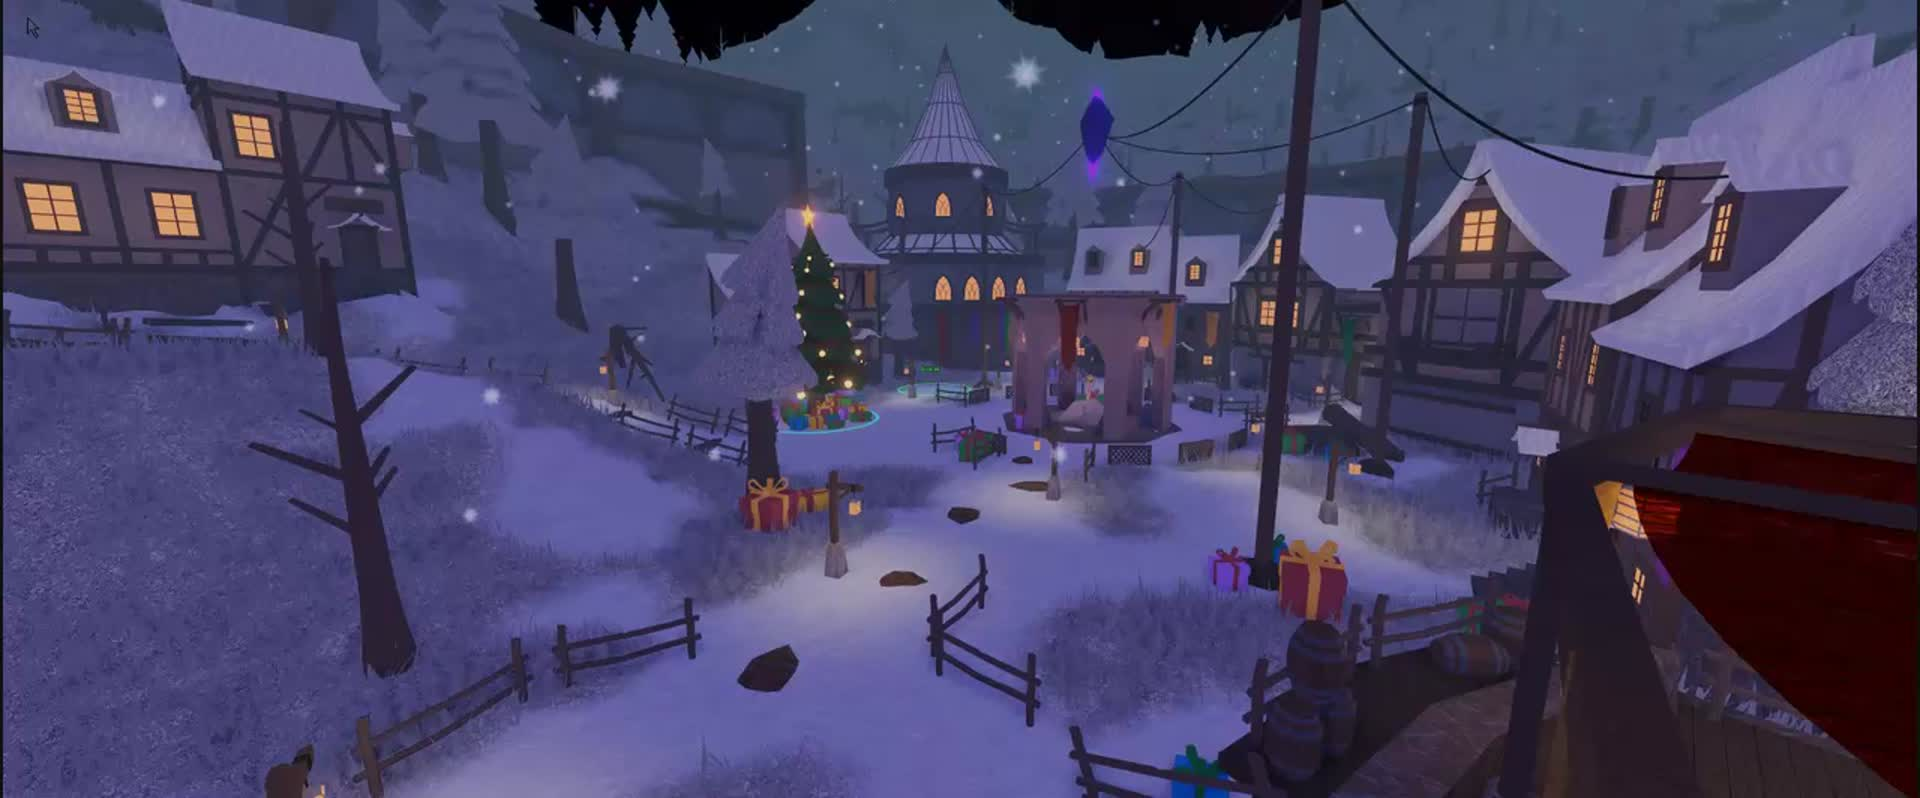 Roblox Dungeon Quest Excalibur Purple Stone Artstation Christmas Town Black Smith